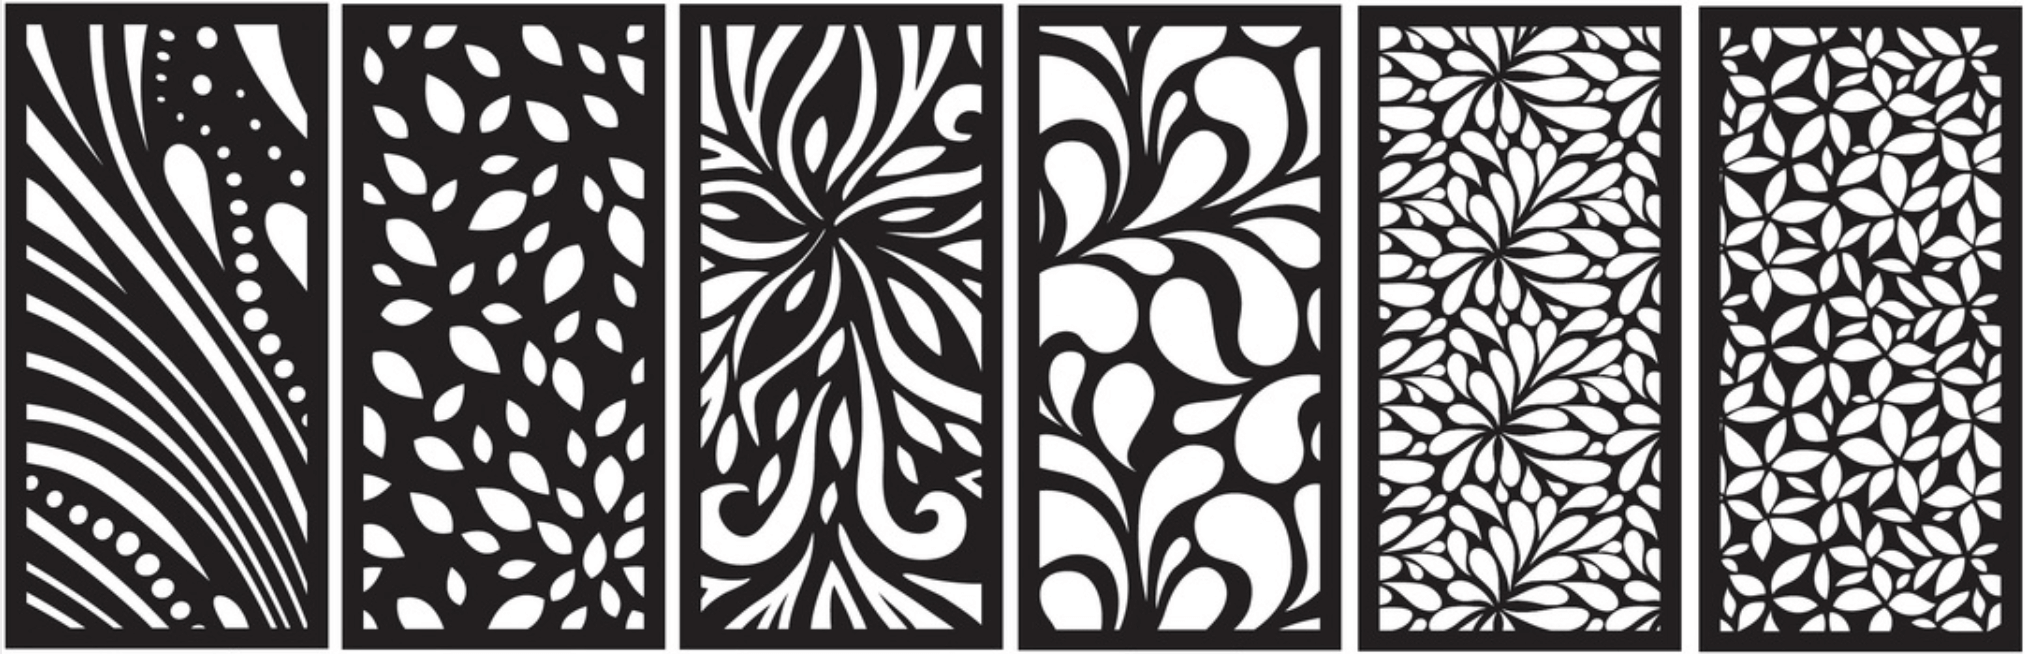 Security Screens QLD In House Security Product Ranges - Inspiration Design Deco-Screen Decorative Screen